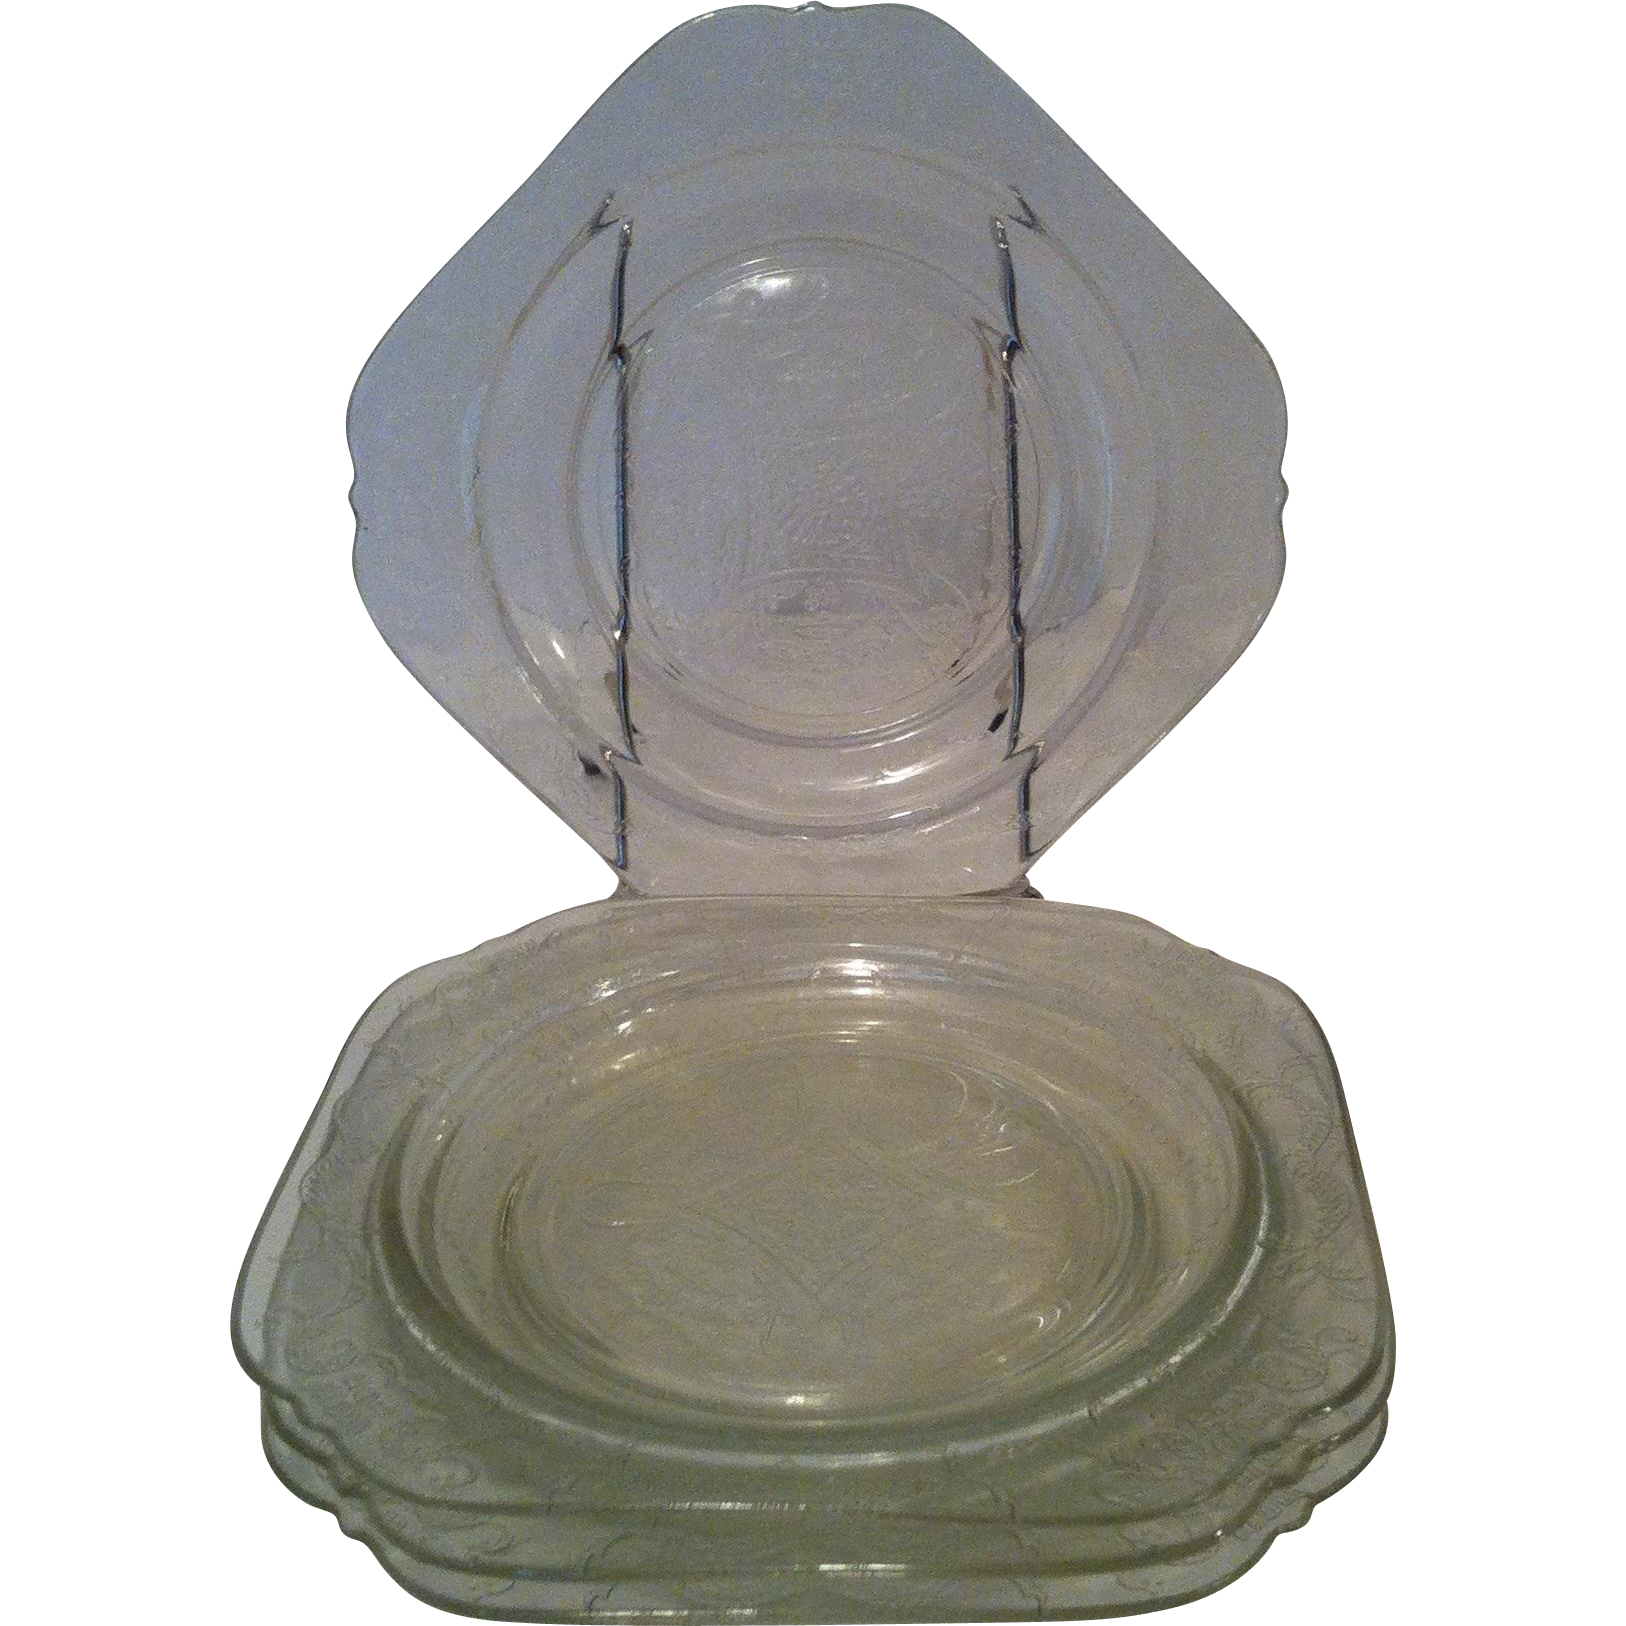 4 Indiana Recollection Clear Madrid Salad Plates